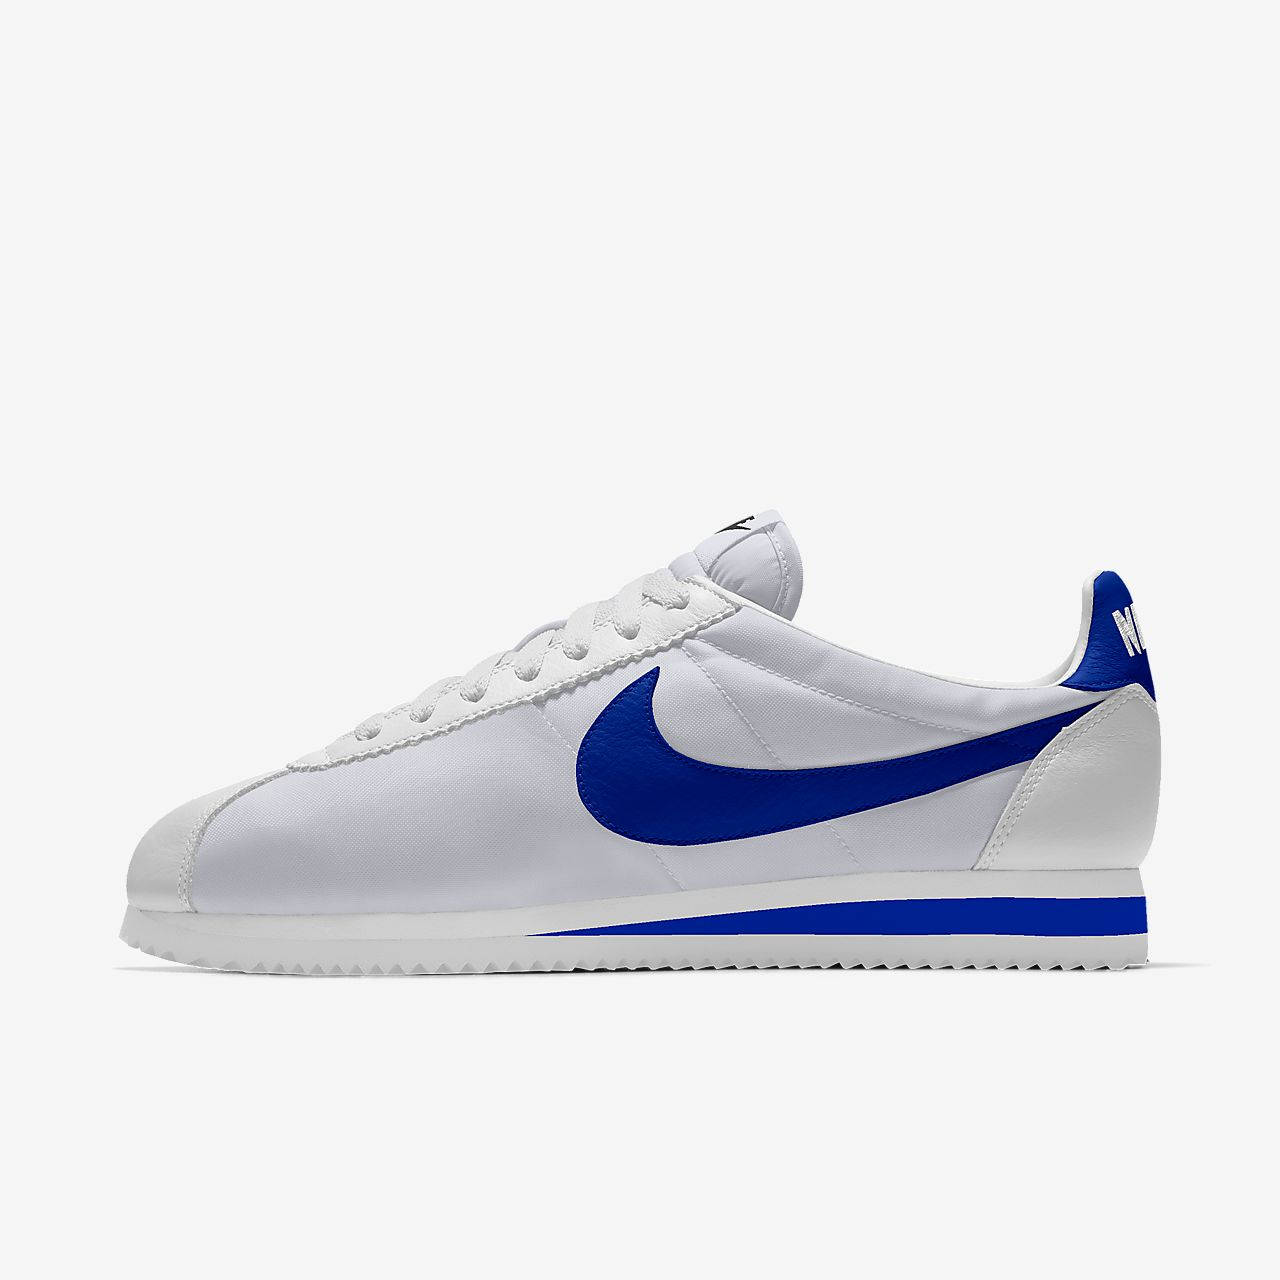 Chaussure personnalisable Nike Classic Cortez By You pour Homme